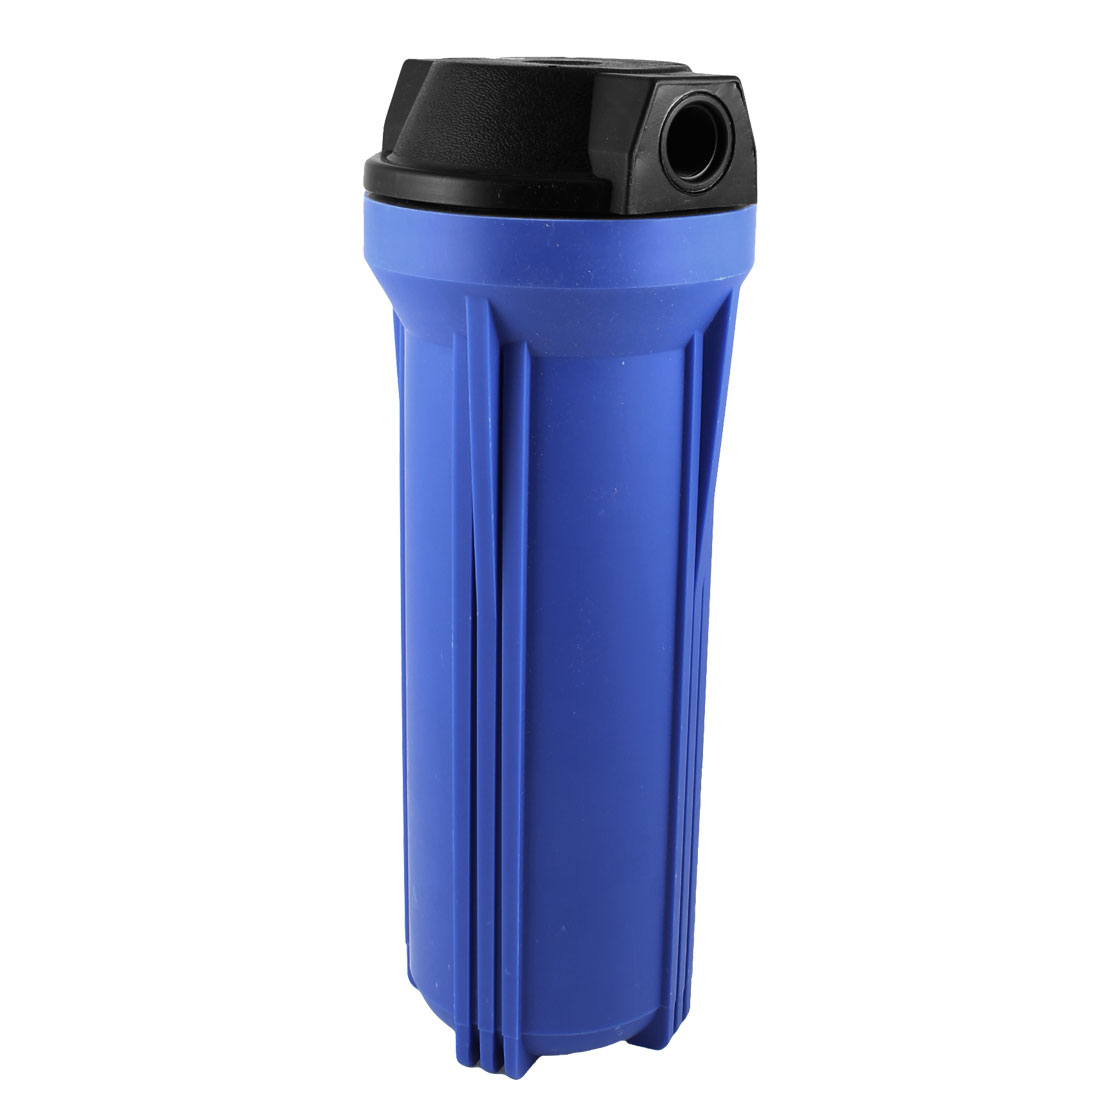 Fish Tank Aquarium Water Cleaning Cylinder Plastic Filter Black Blue w Wrench